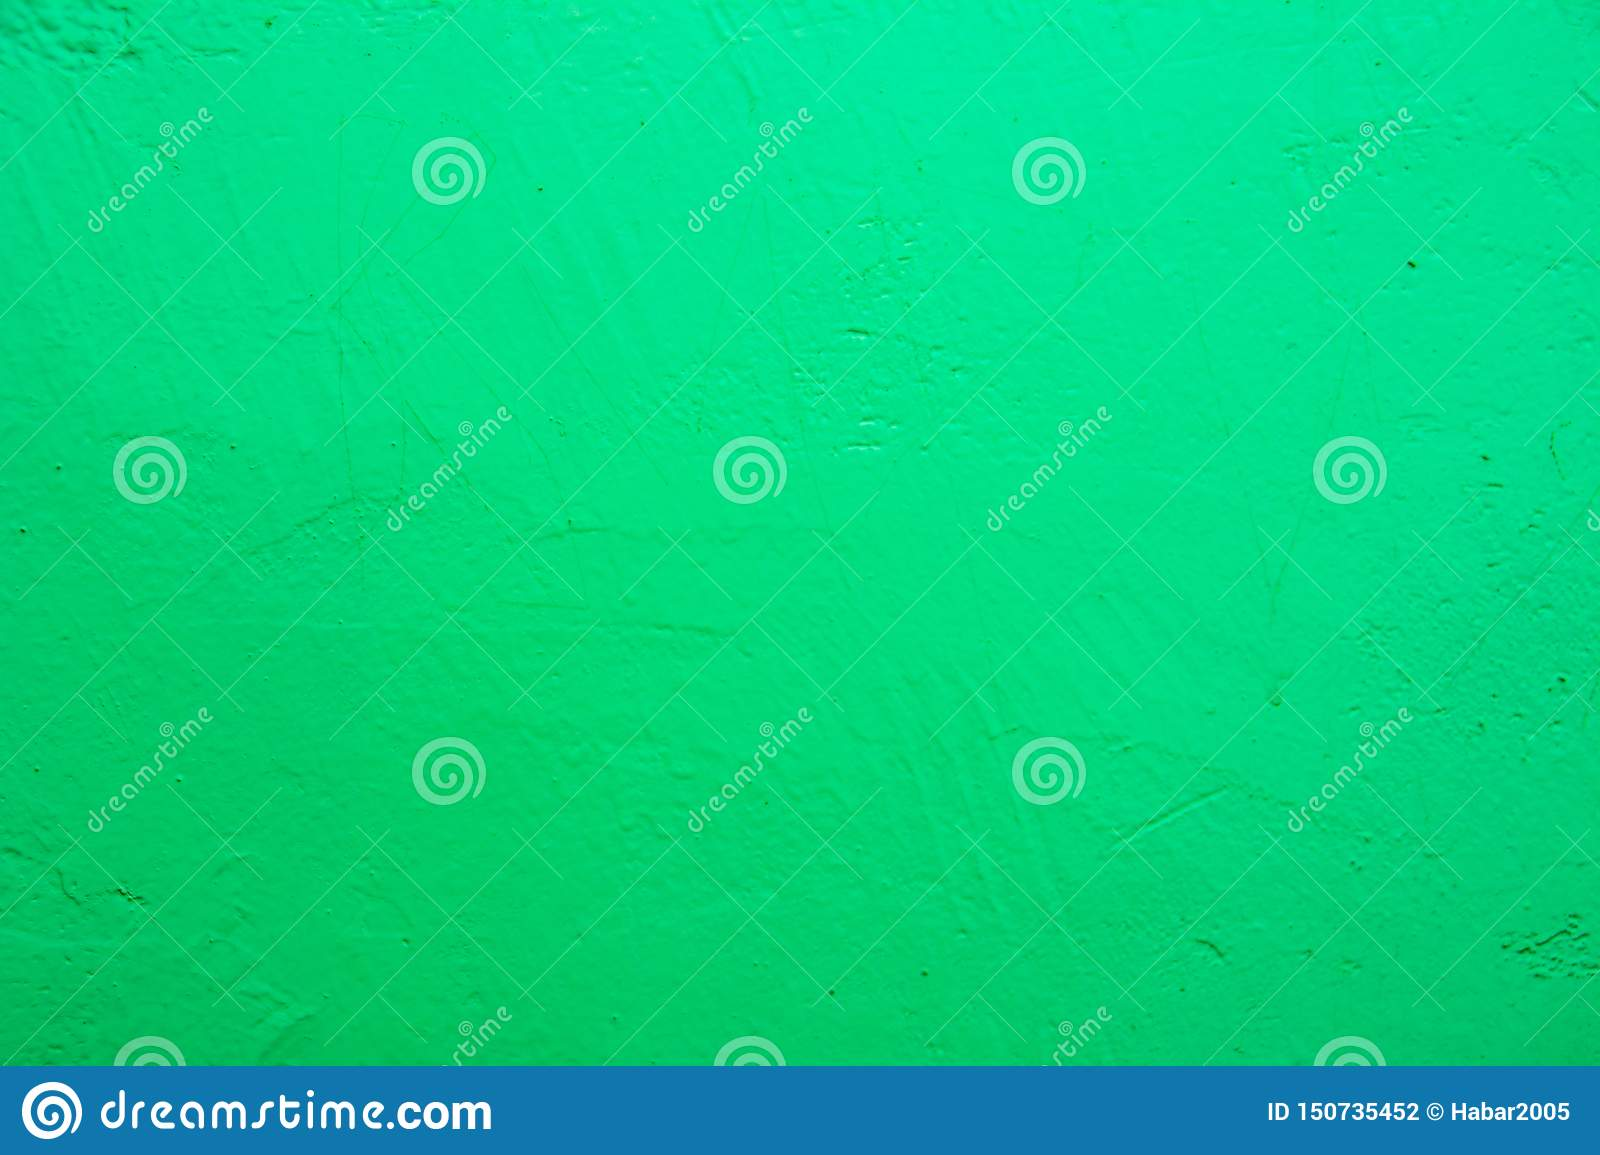 Wall painted in blue texture. Seamless texture of a light pale green concrete wall.